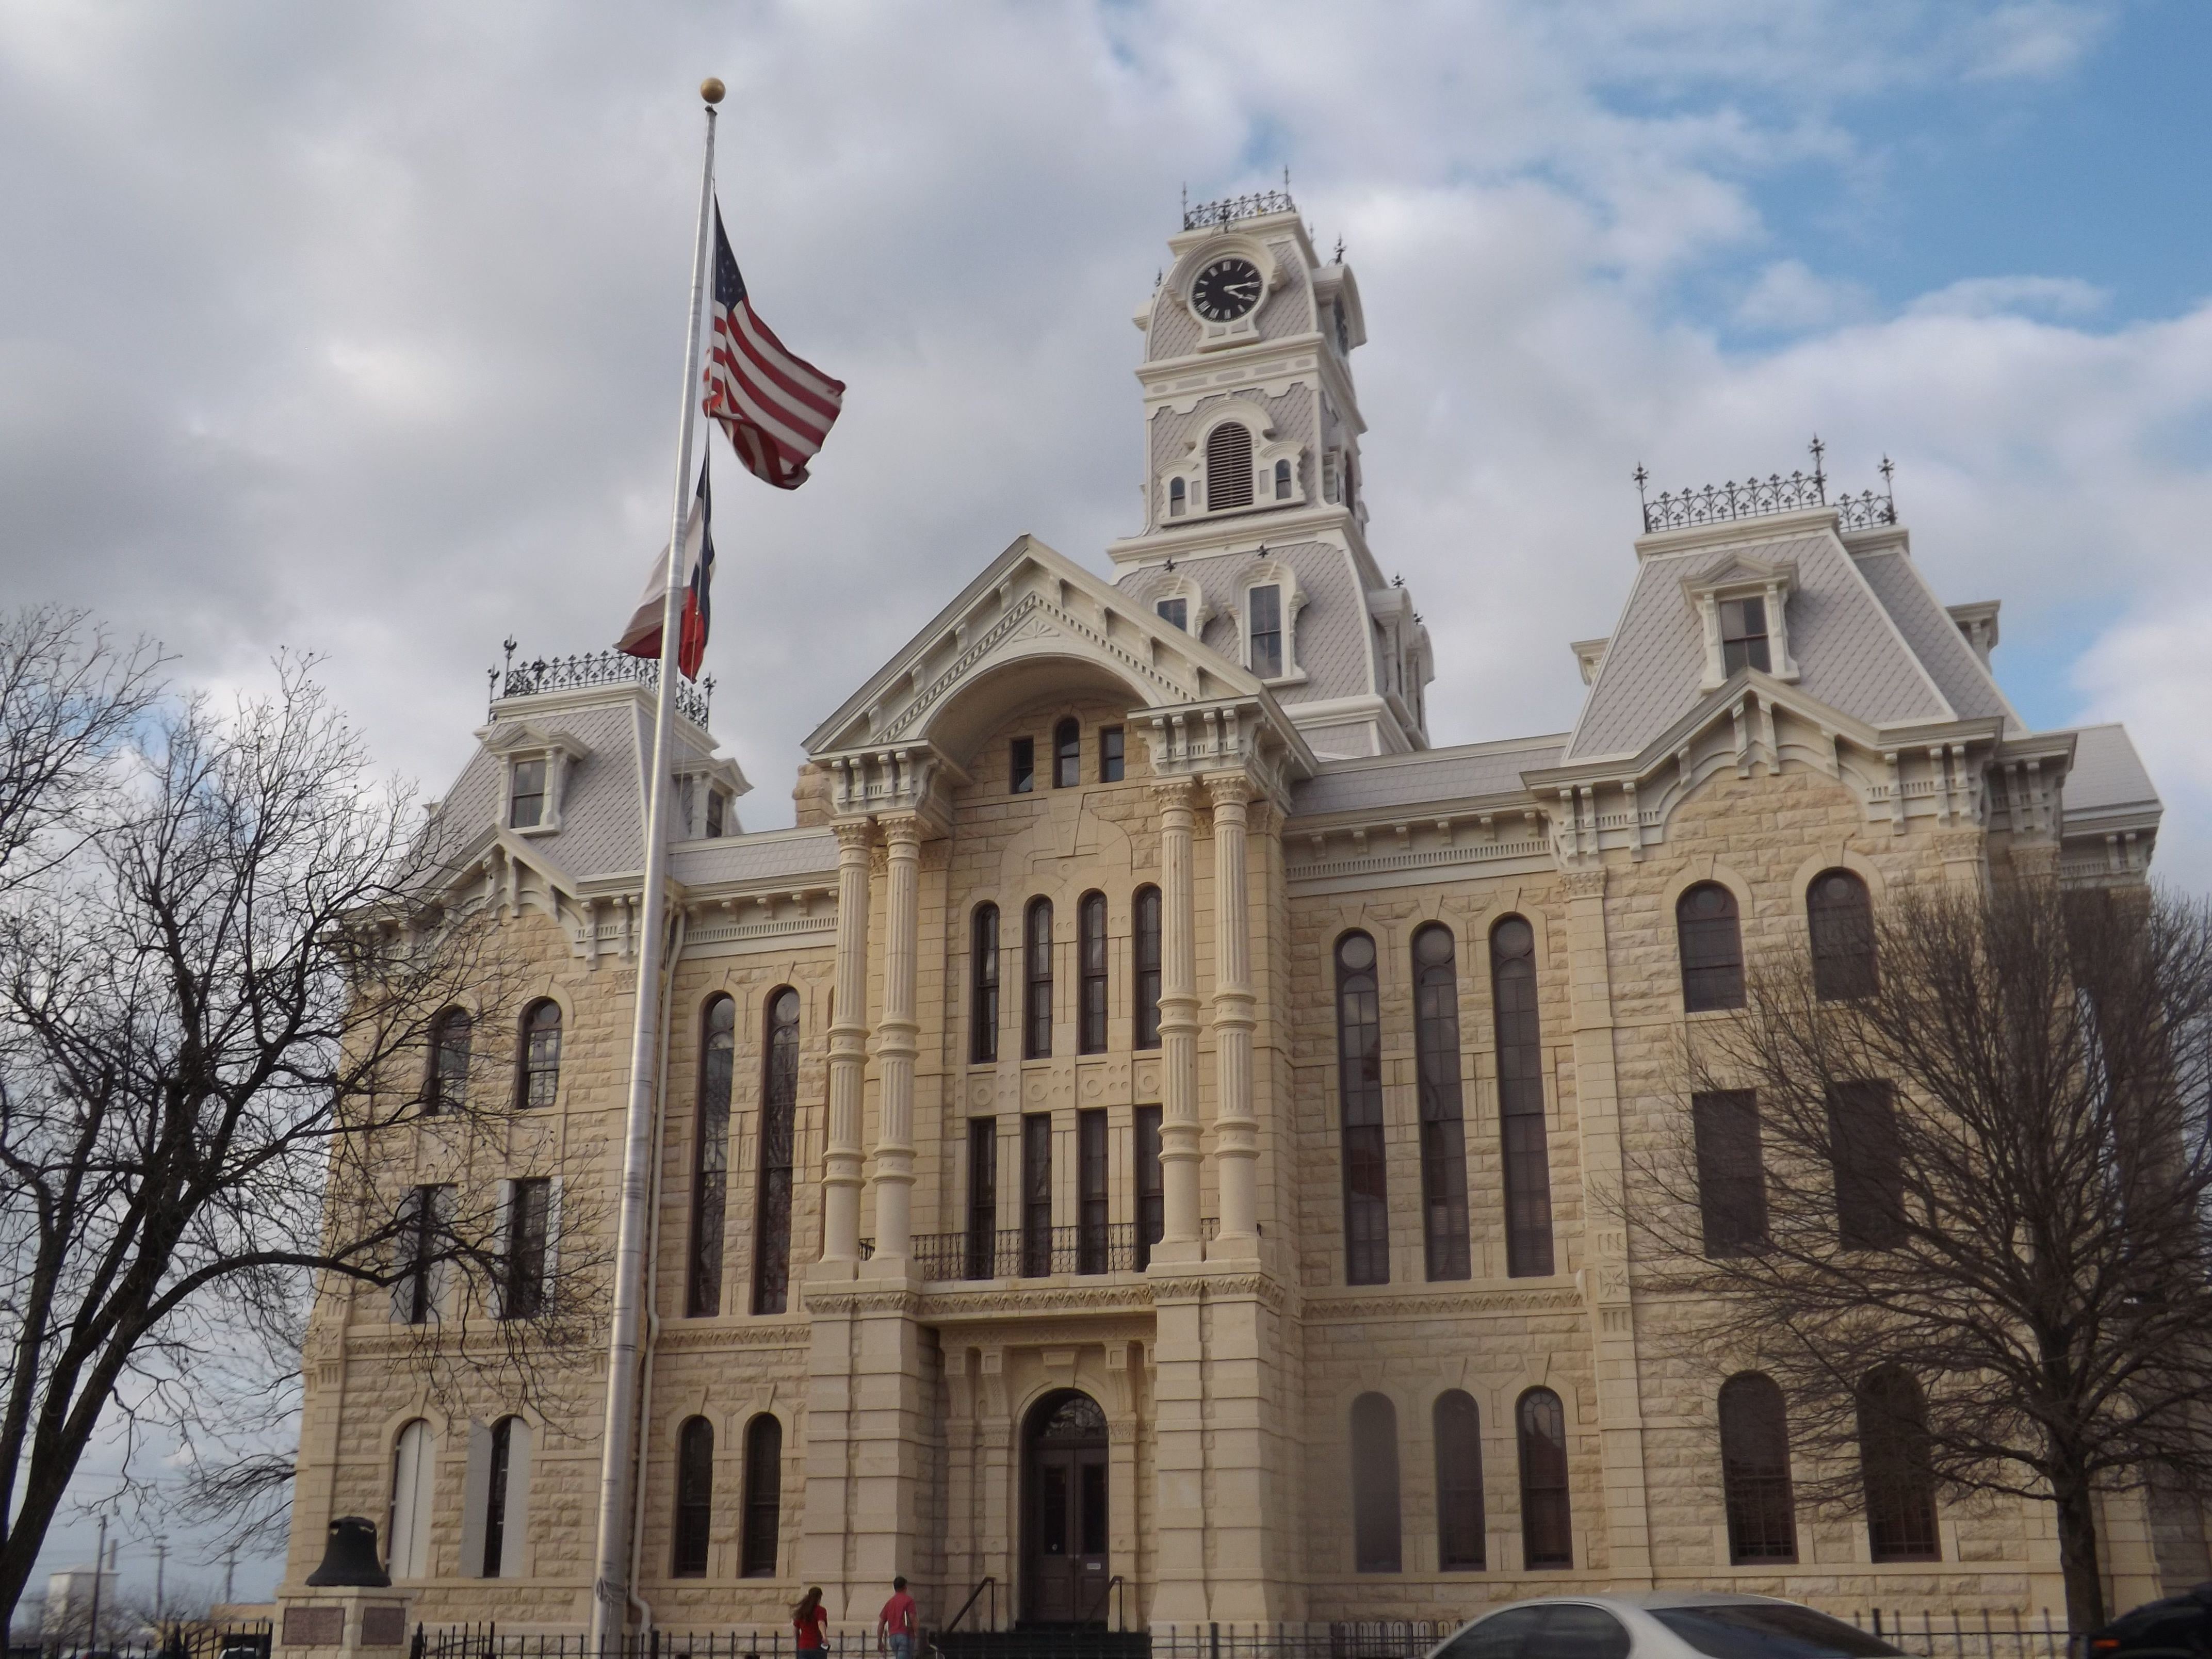 Hill County Courthouse, Hillsboro, Texas Hill county